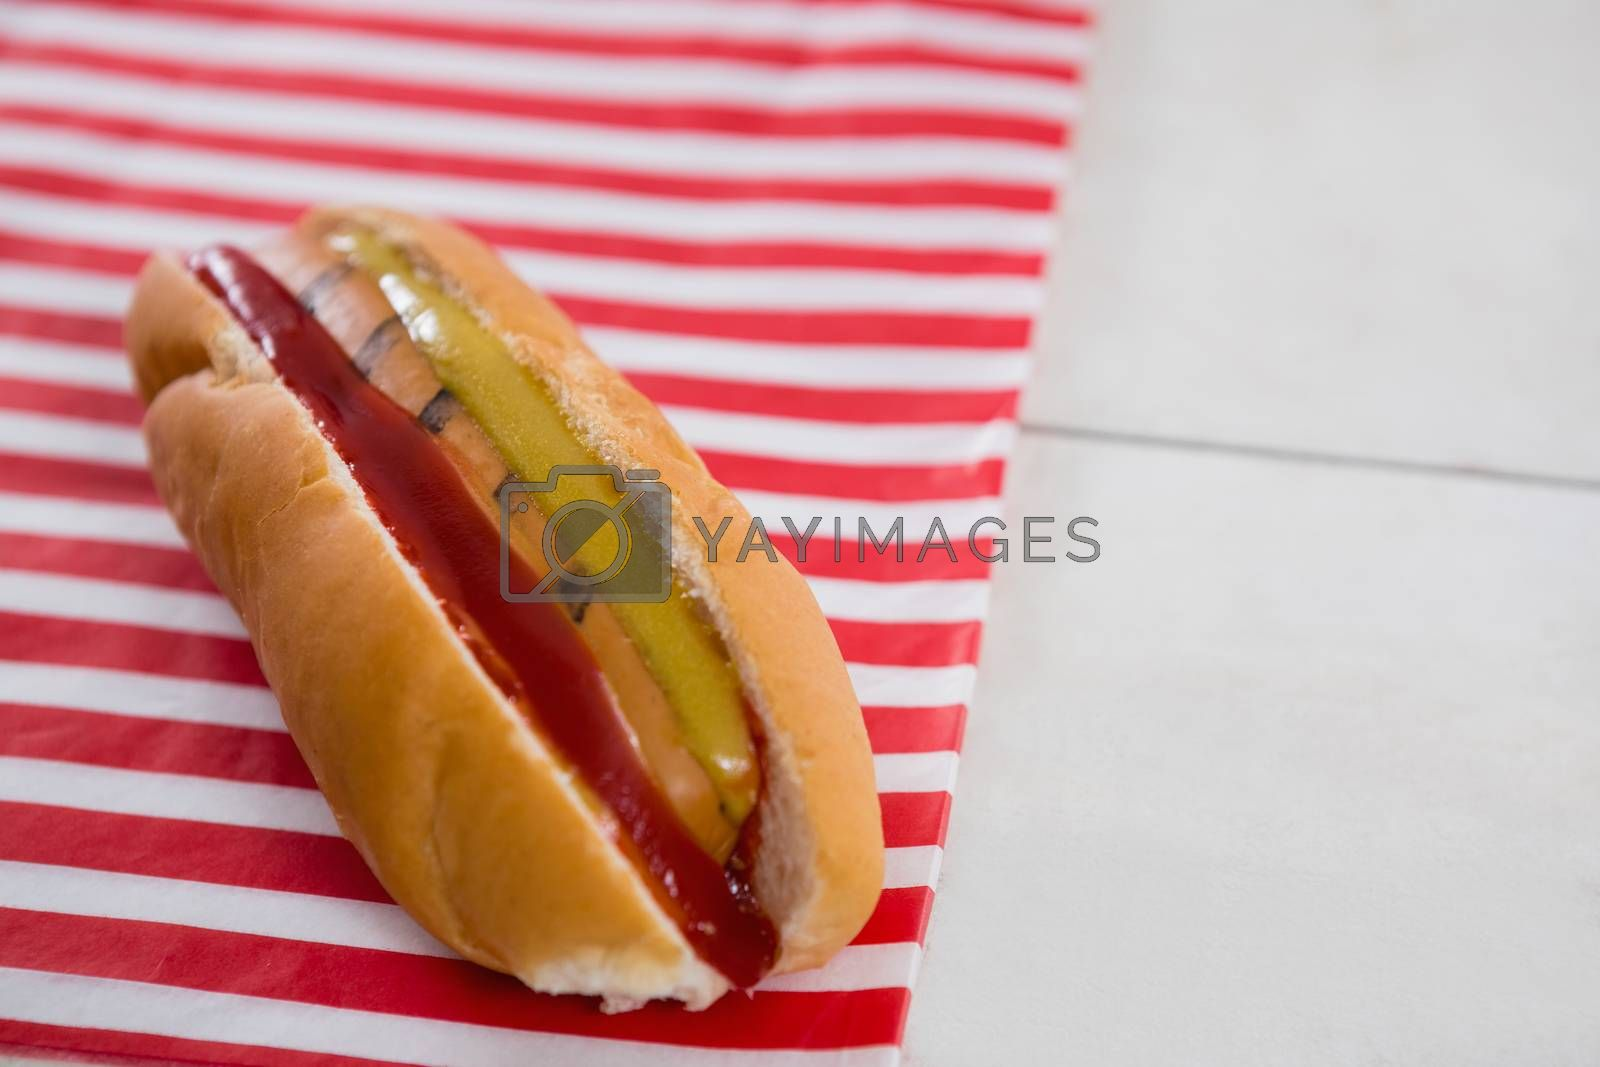 Close-up of Hot dog on wooden table with 4th july theme